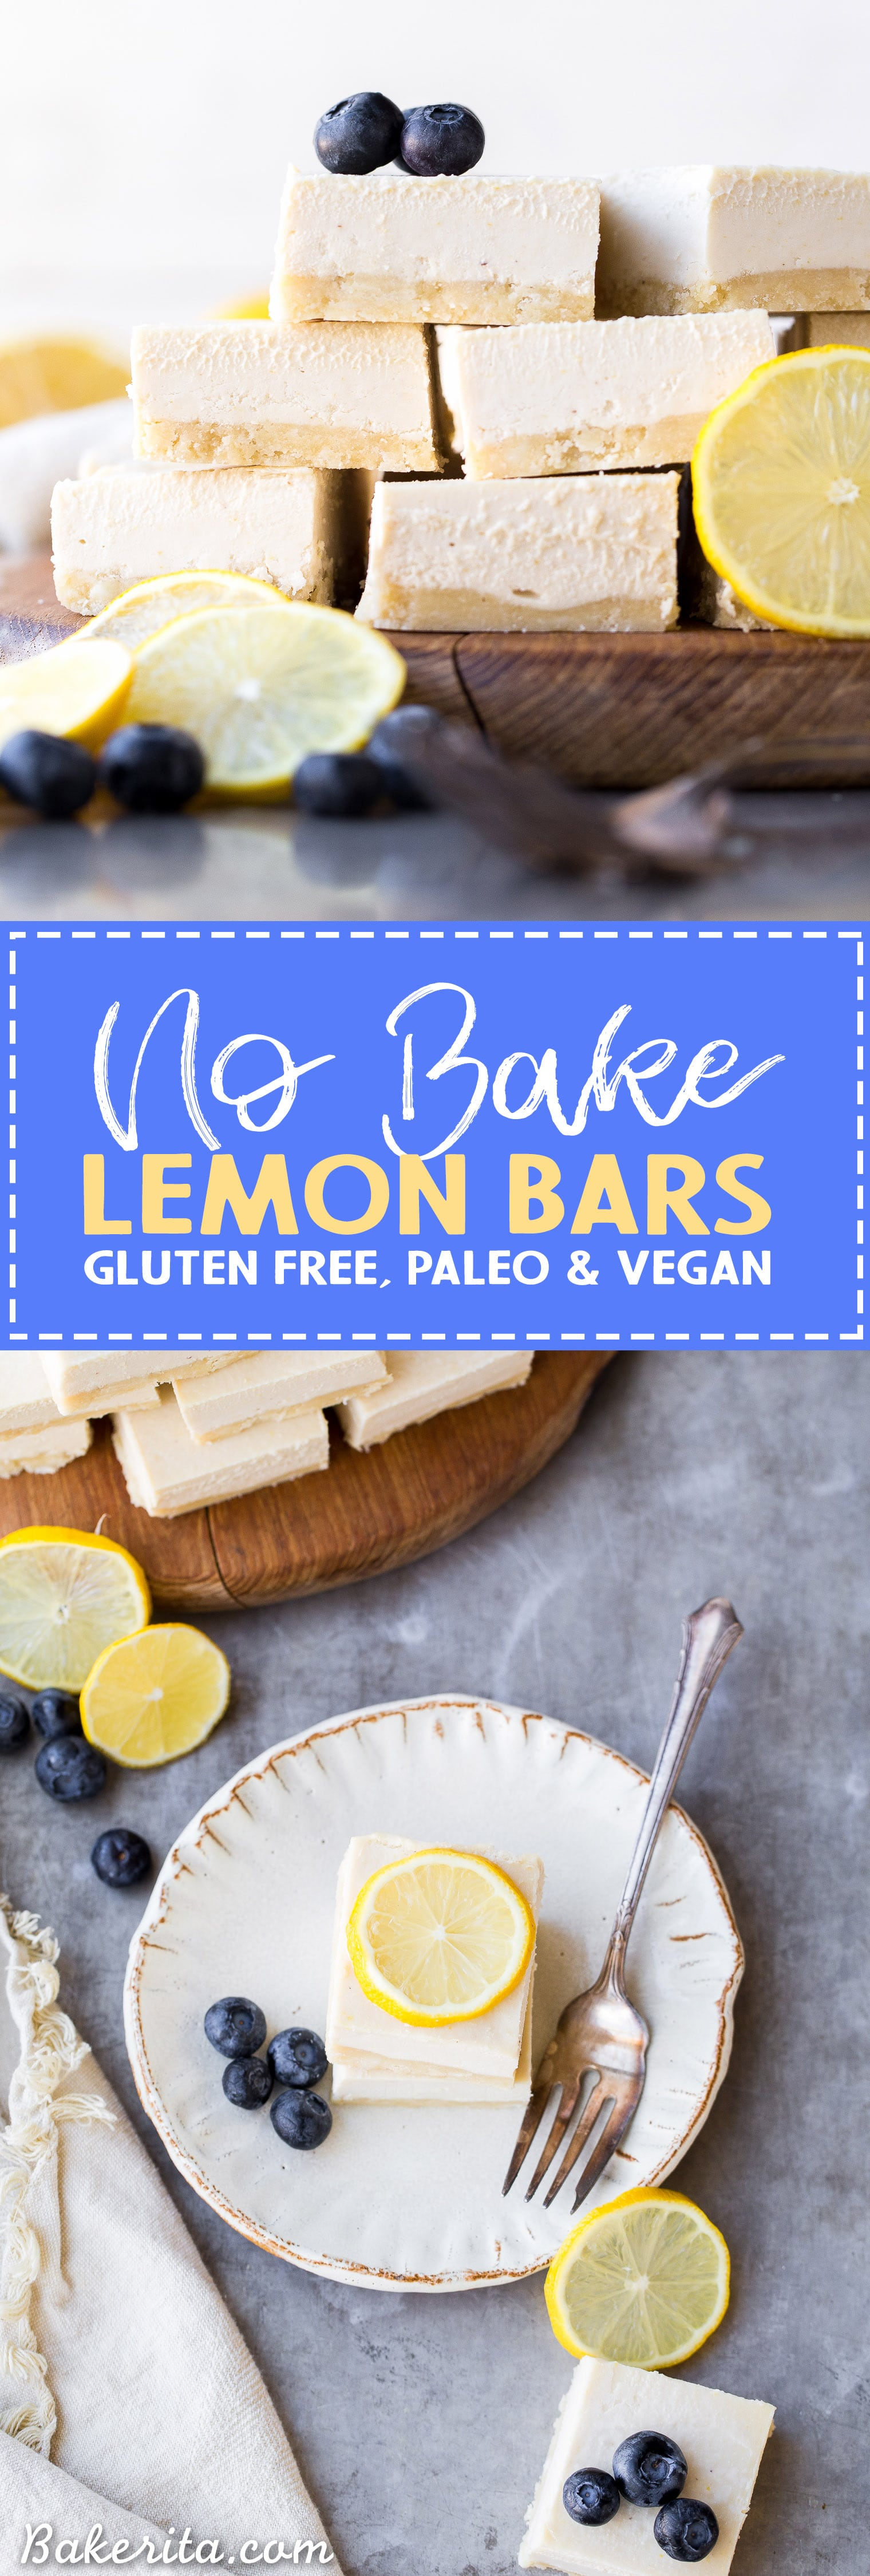 These No Bake Lemon Bars are incredibly smooth and creamy with a bright and tart lemon flavor. These gluten-free, paleo and vegan lemon bars come together quickly and easily in a blender.